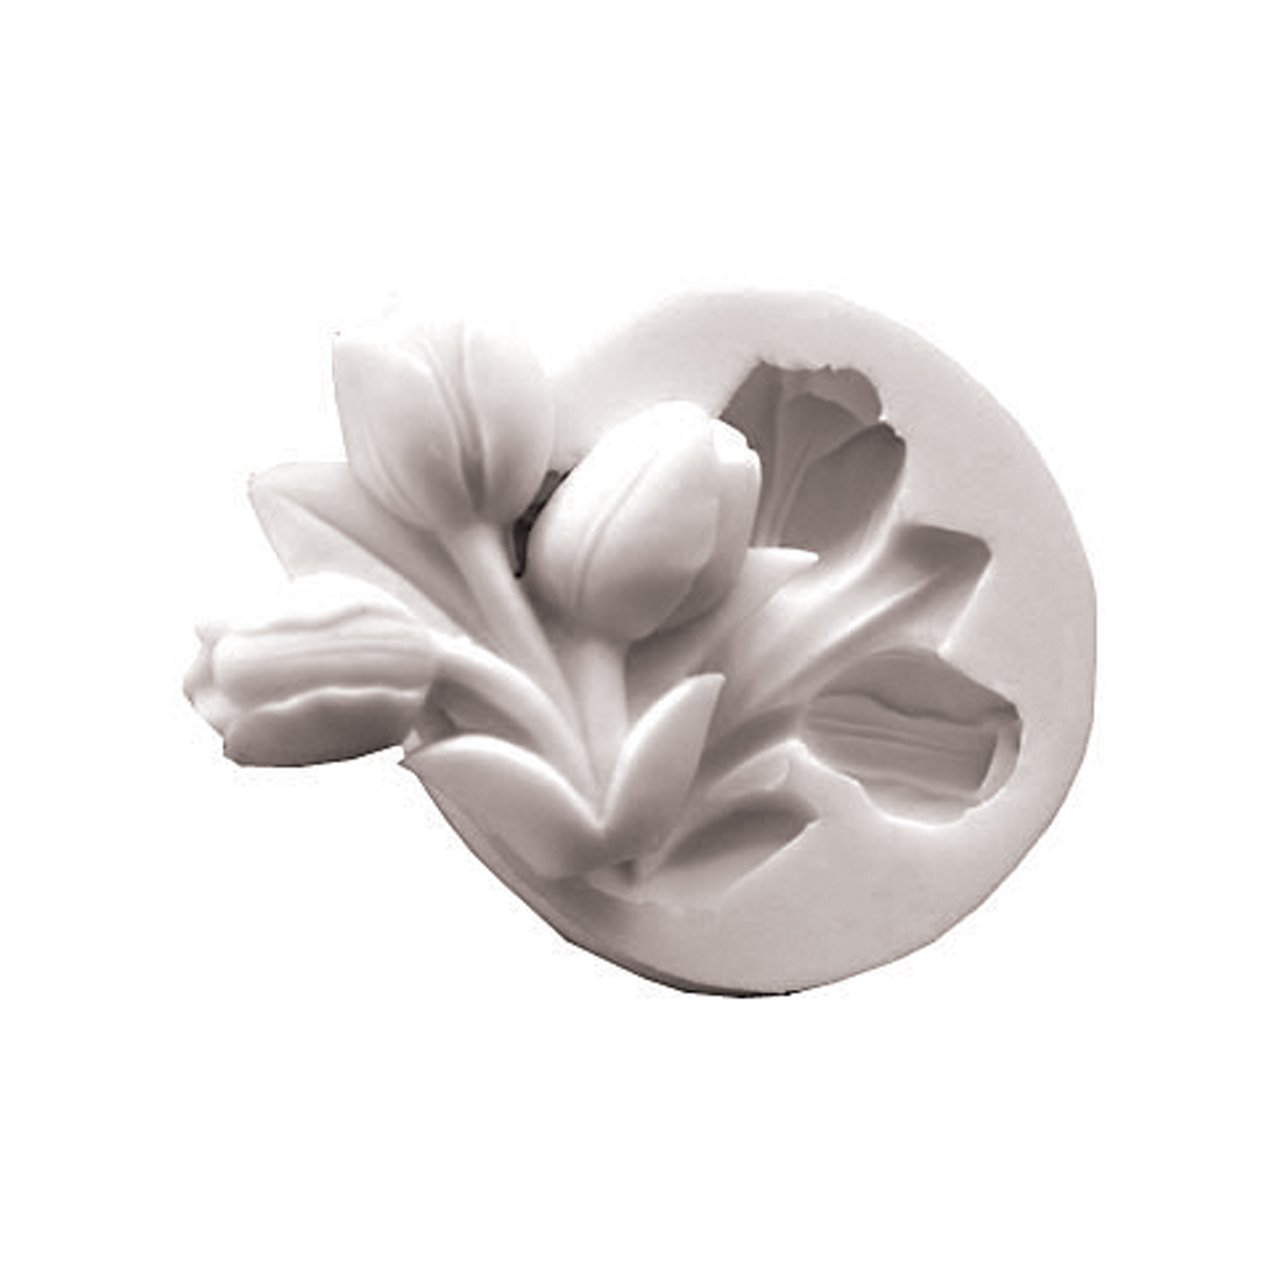 Paderno World Cuisine 2 3/8 Inch by 2 Inch Composite Plastic Tulip Chocolate Mold